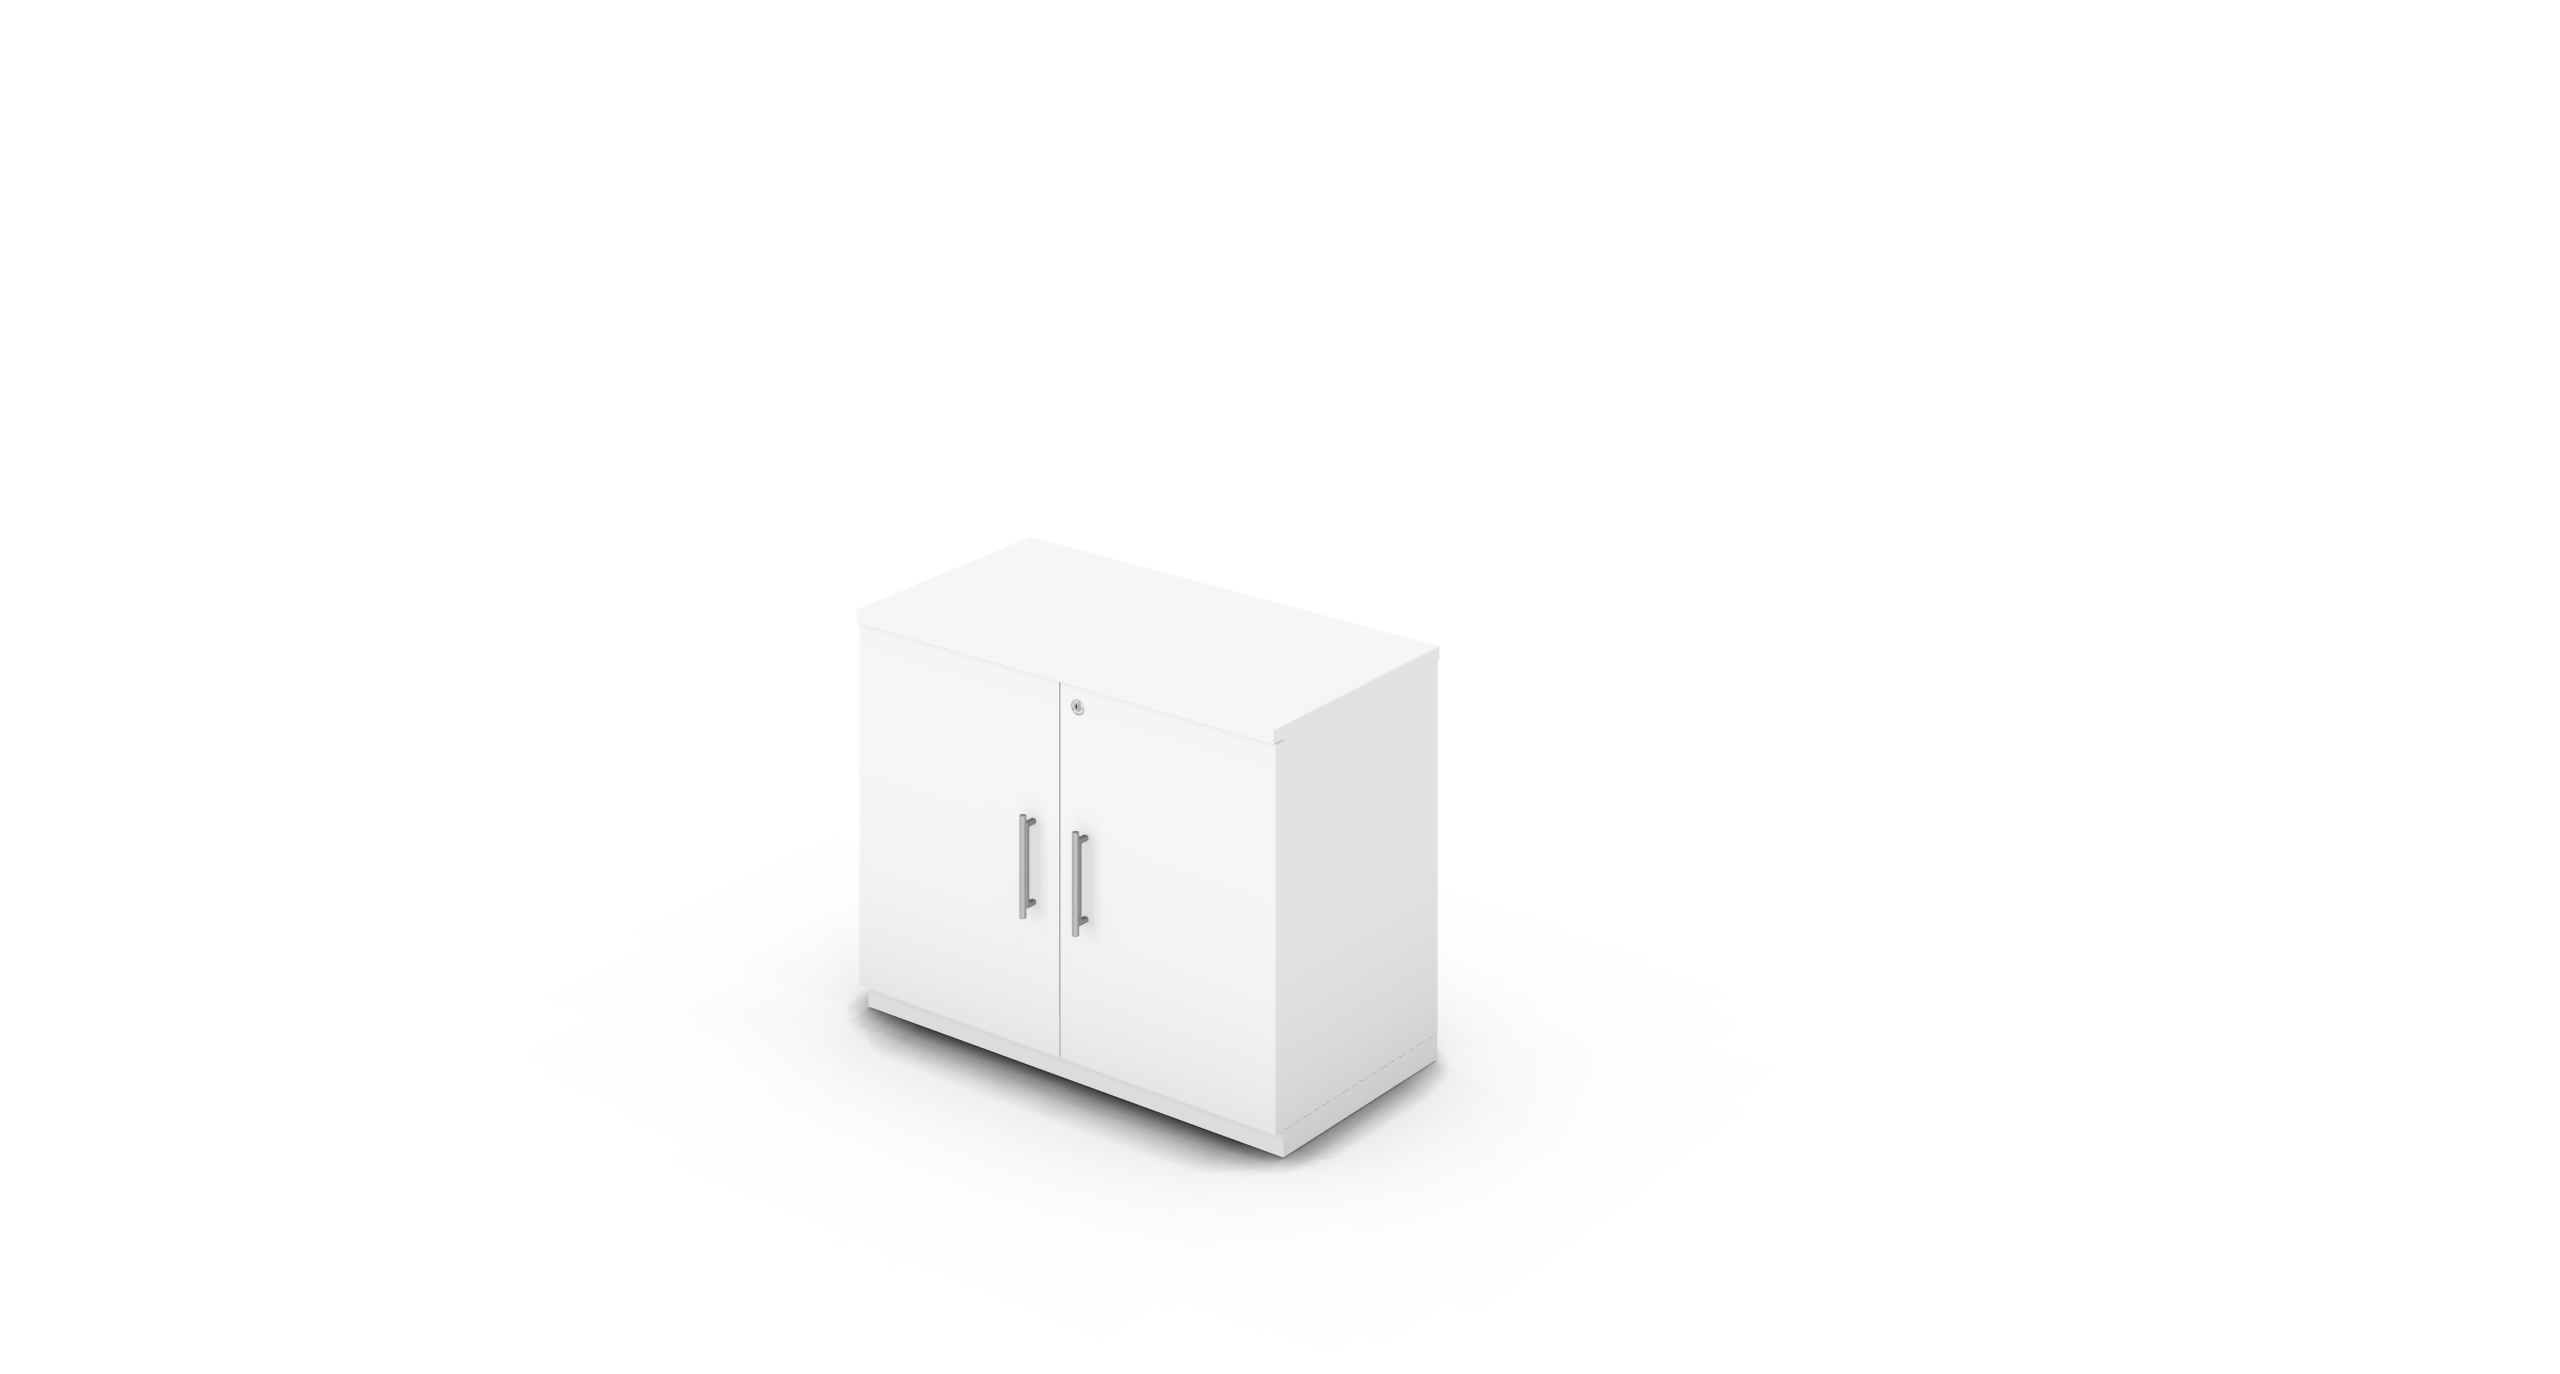 Cabinet_900x450x775_HD_White_Bar_Square_WithCylinder